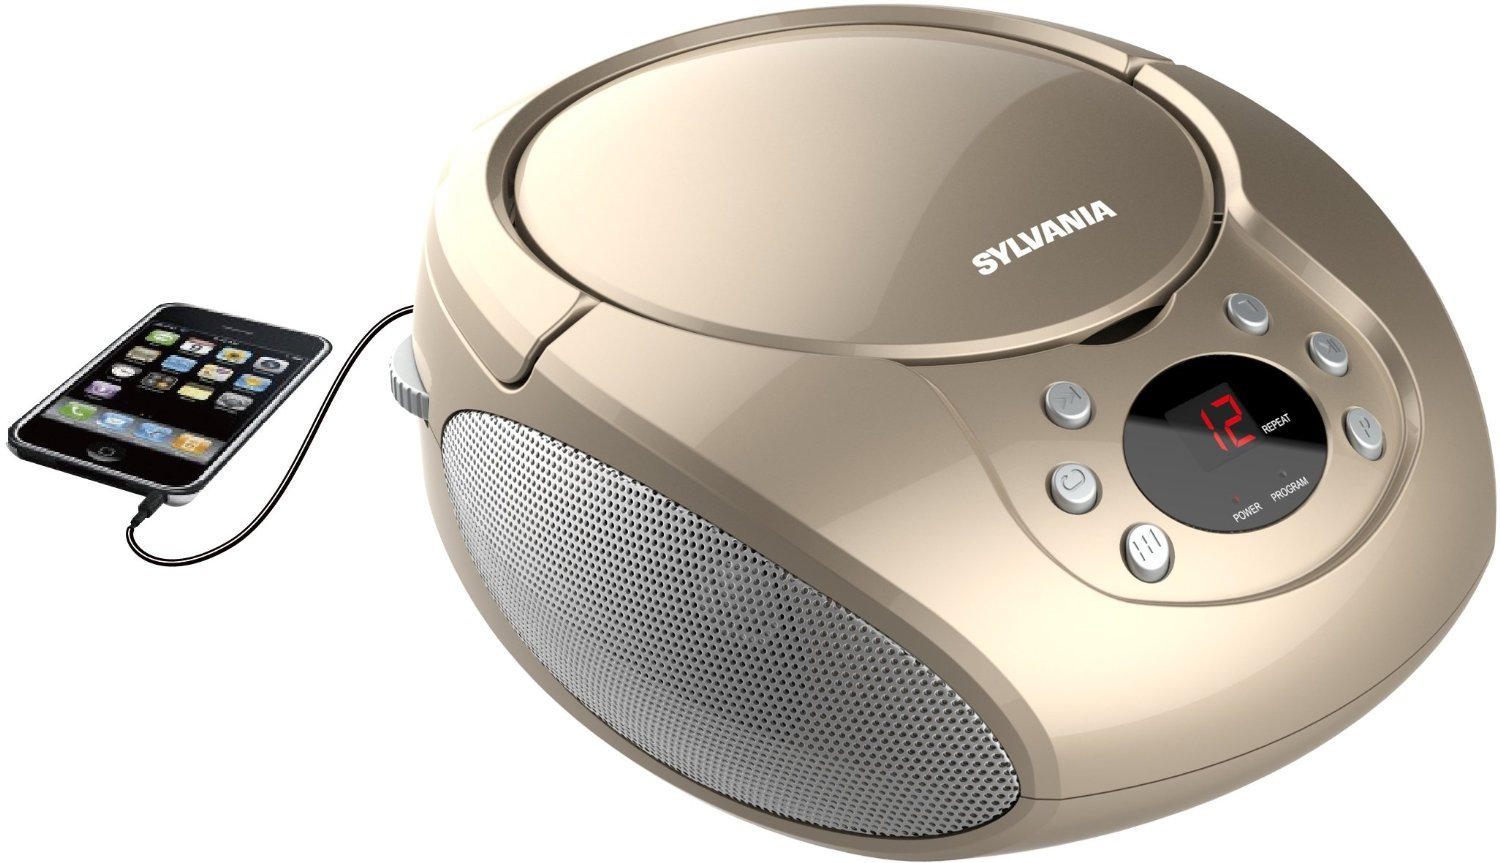 Sylvania Portable Cd Player & AM/FM Radio Tuner Mega Bass Reflex Boombox Sound System Plus 6ft Aux Cable to Connect Any Ipod, Iphone or Mp3 Digital Audio Player